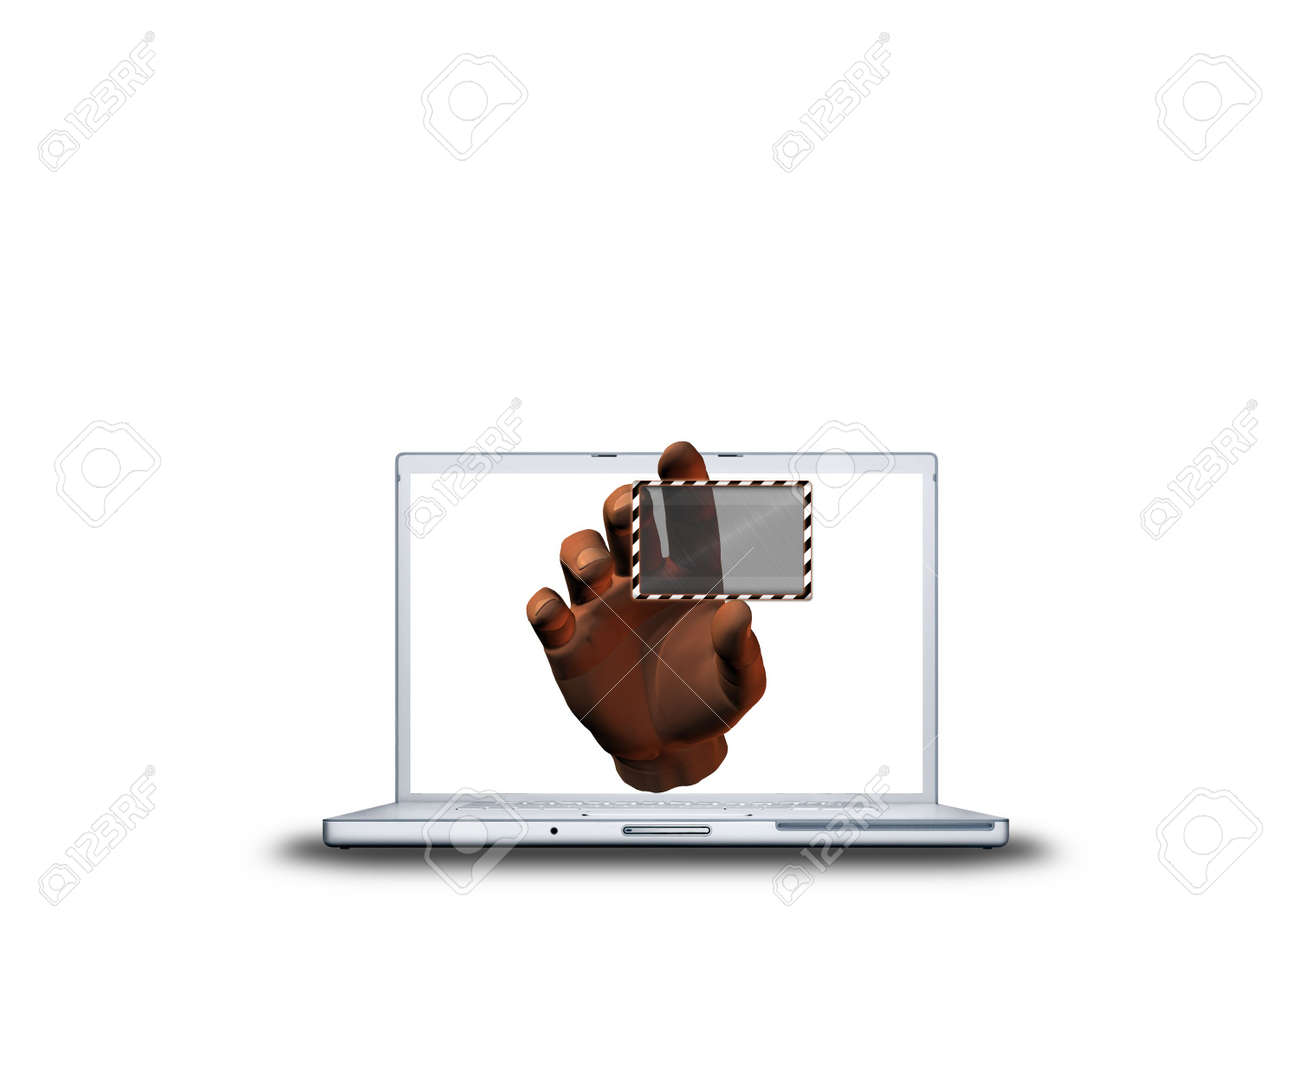 laptop with 3D hand and transparent sticker isolated on white background Stock Photo - 3839874